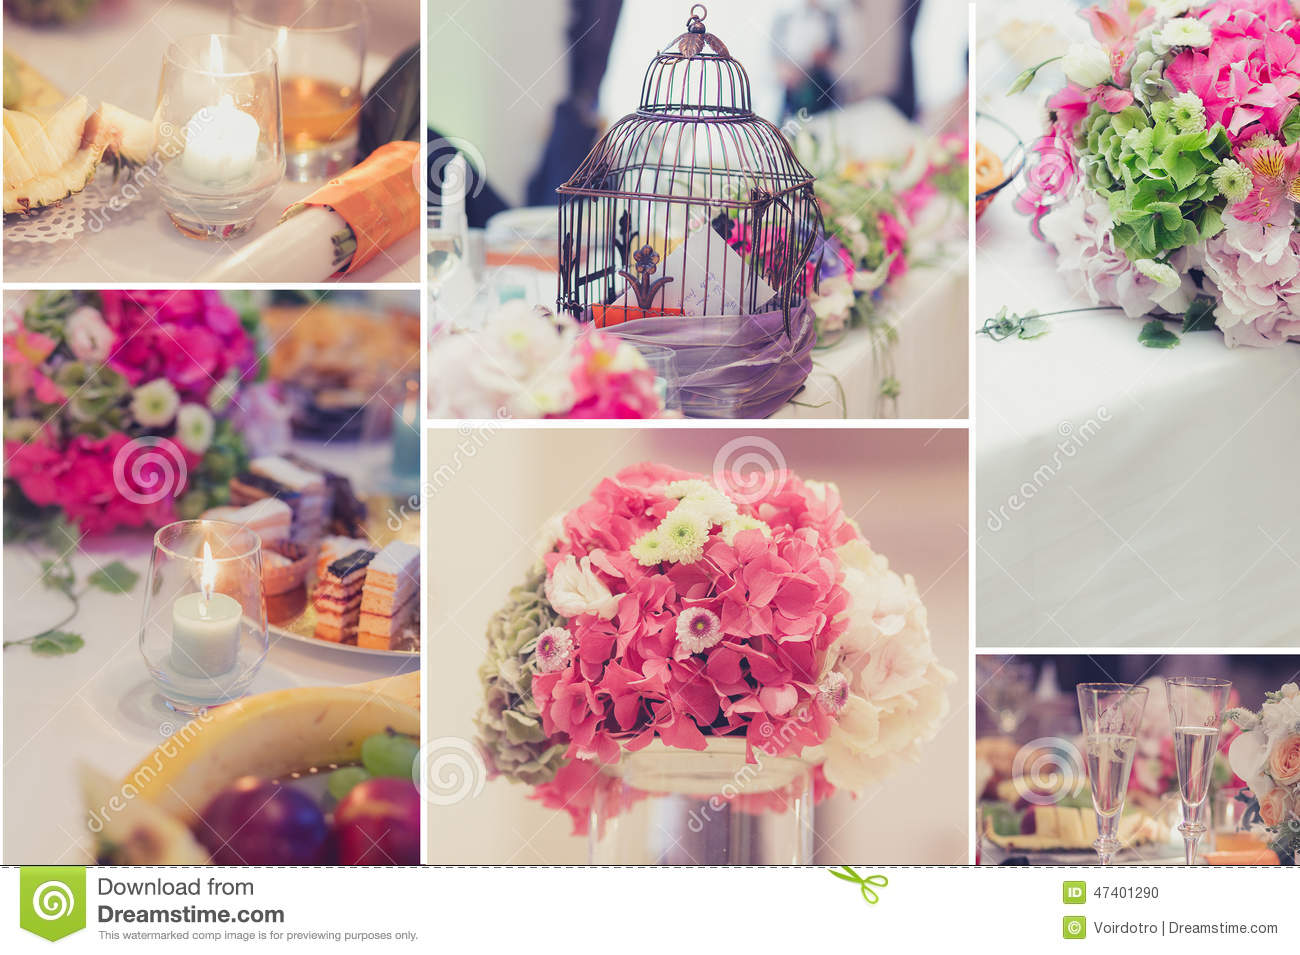 Bridal Table Decorations Collage Stock Photo - Image of detail ...